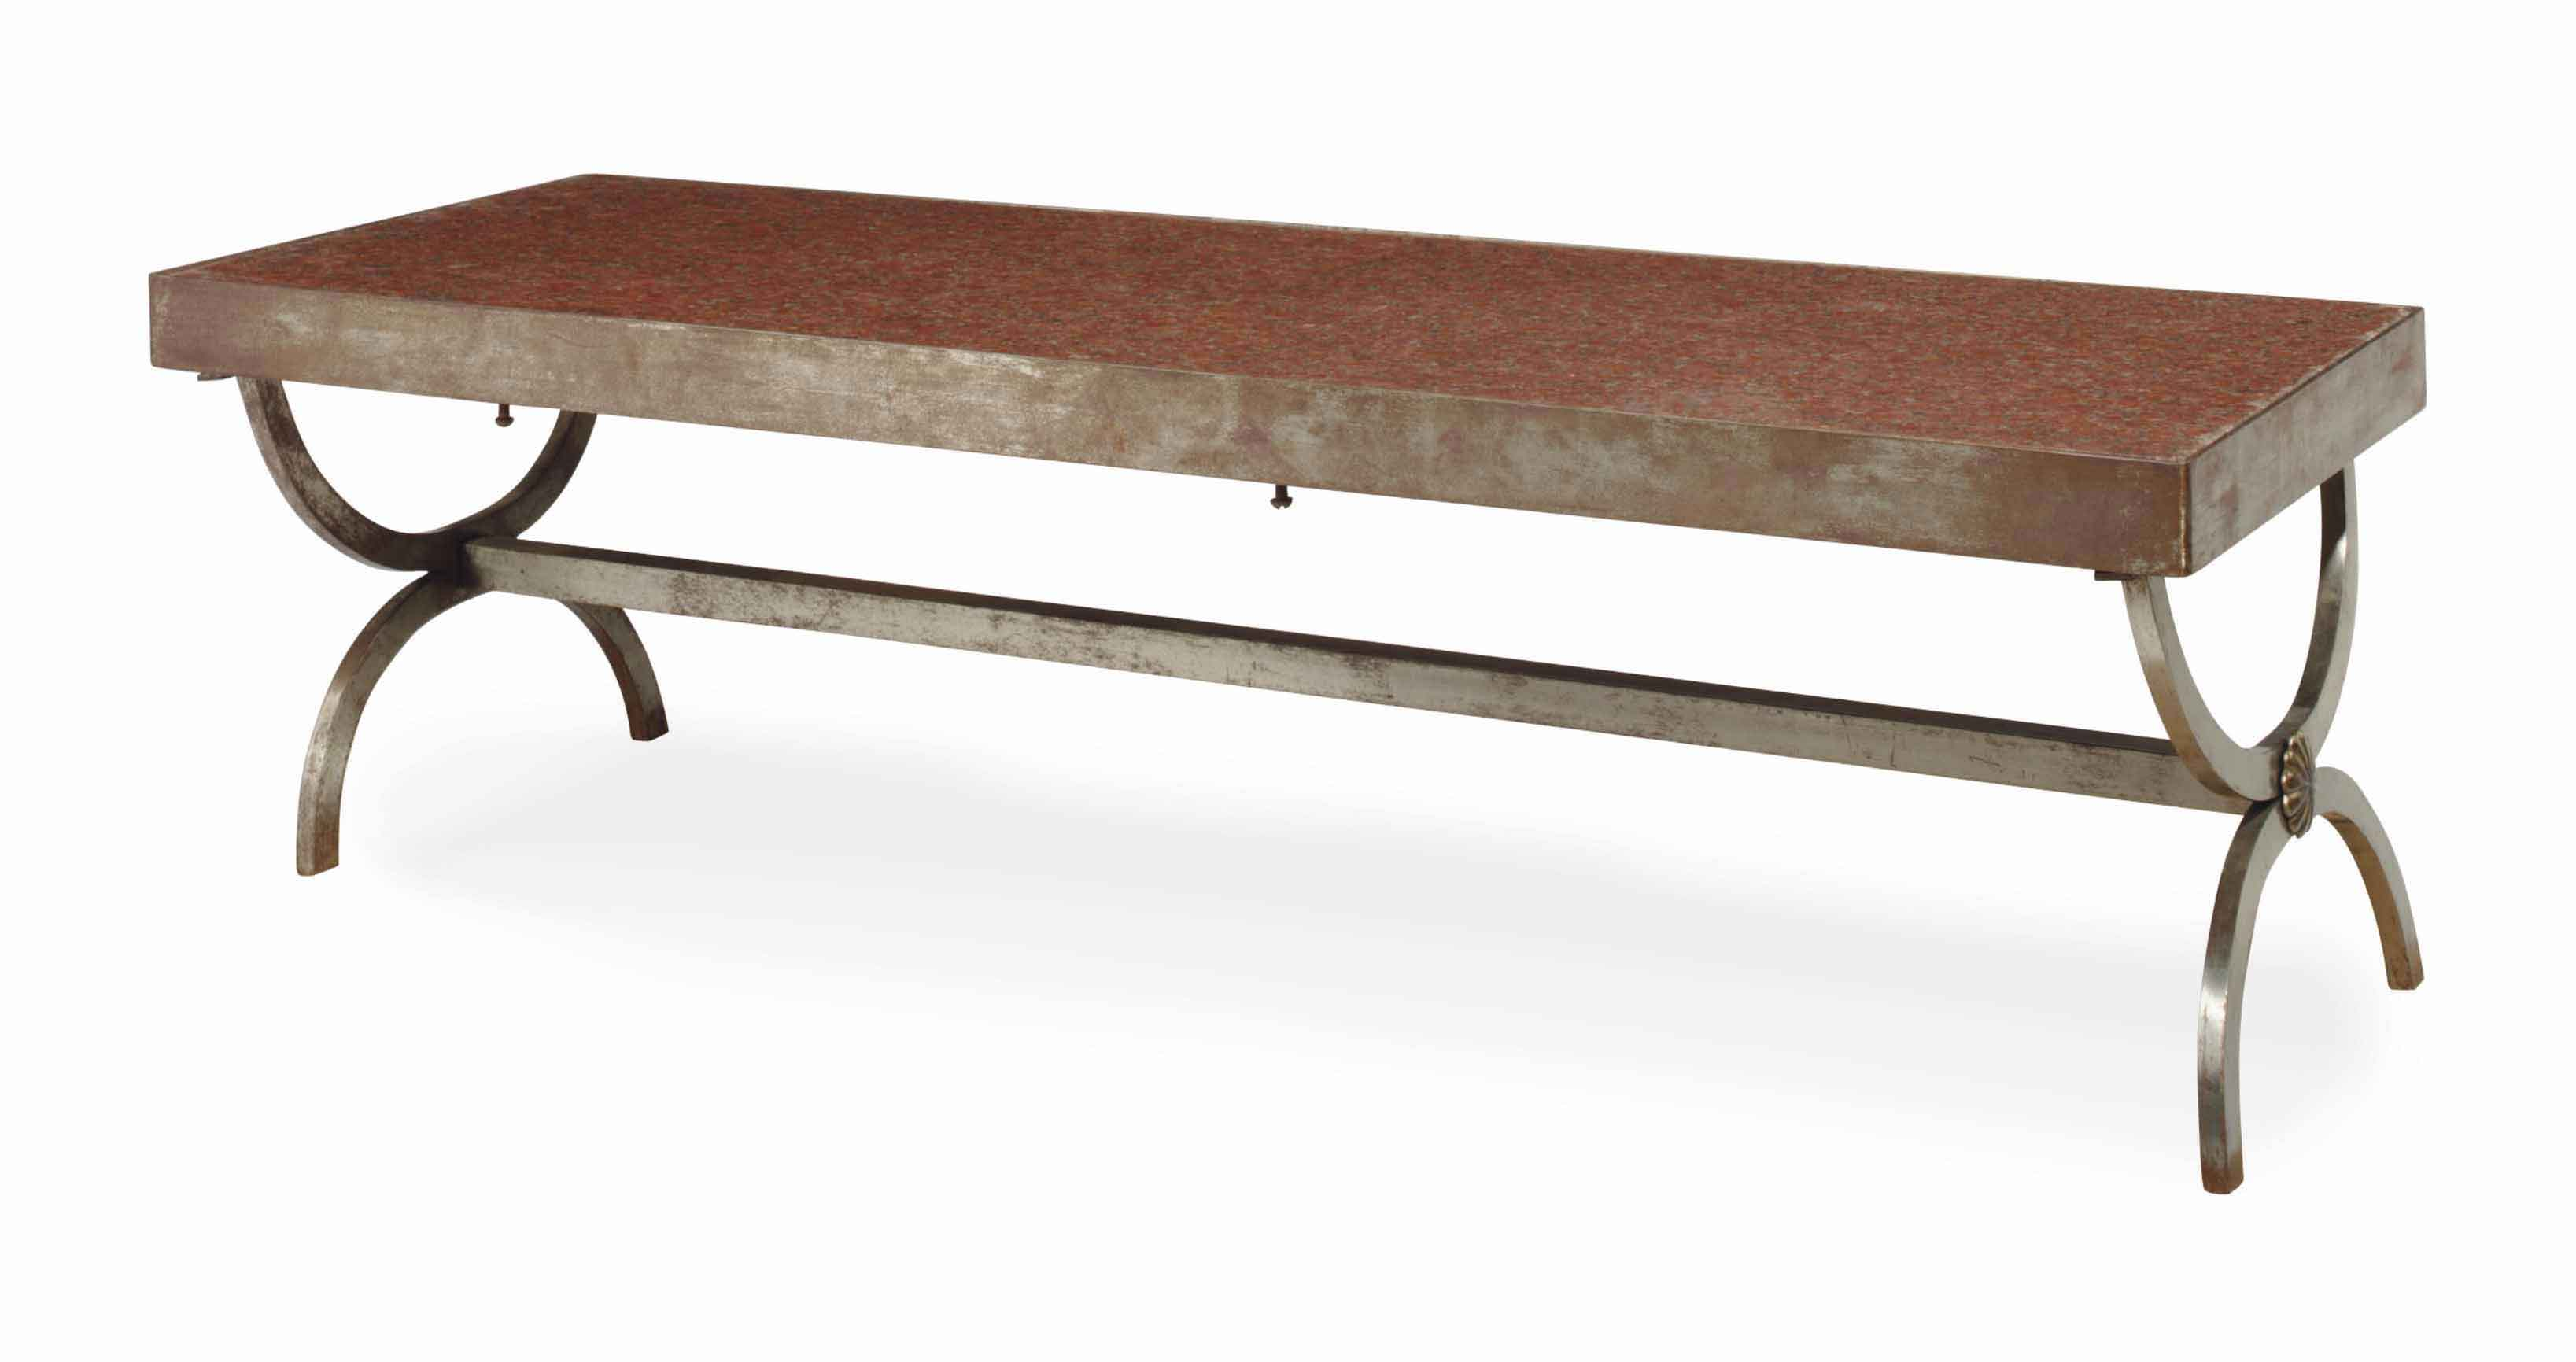 A FRENCH WROUGHT-IRON AND MARBLE-TOP LOW TABLE,